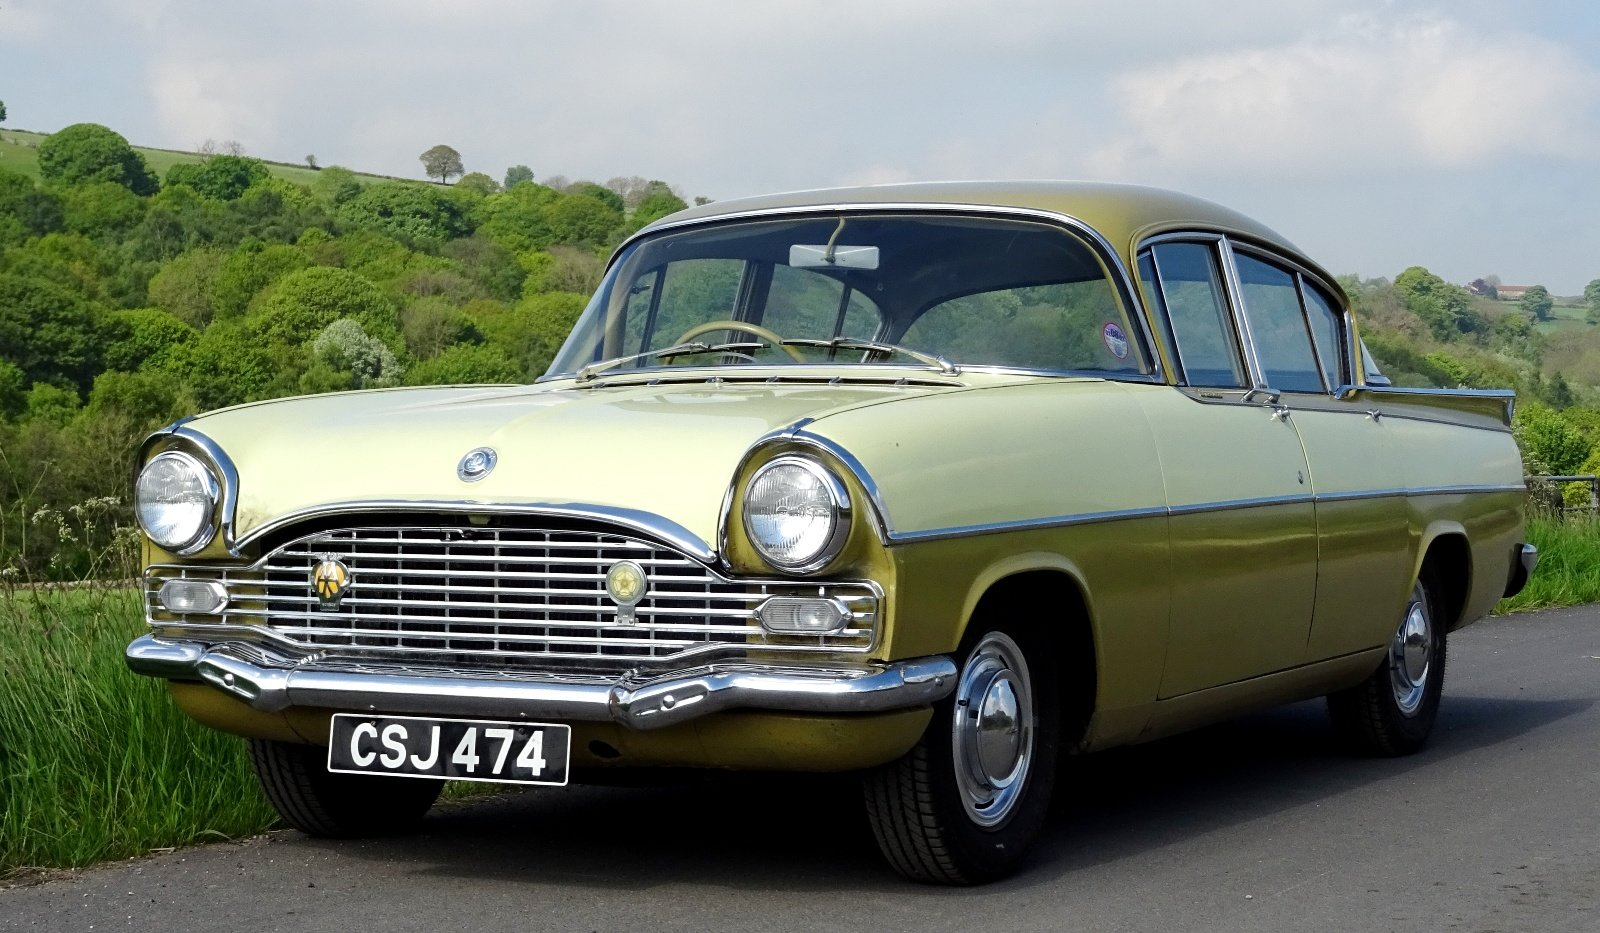 1961 VAUXHALL CRESTA STYLISH CLASSIC RARE COLOUR SCHEME AND SEATS For Sale (picture 2 of 6)